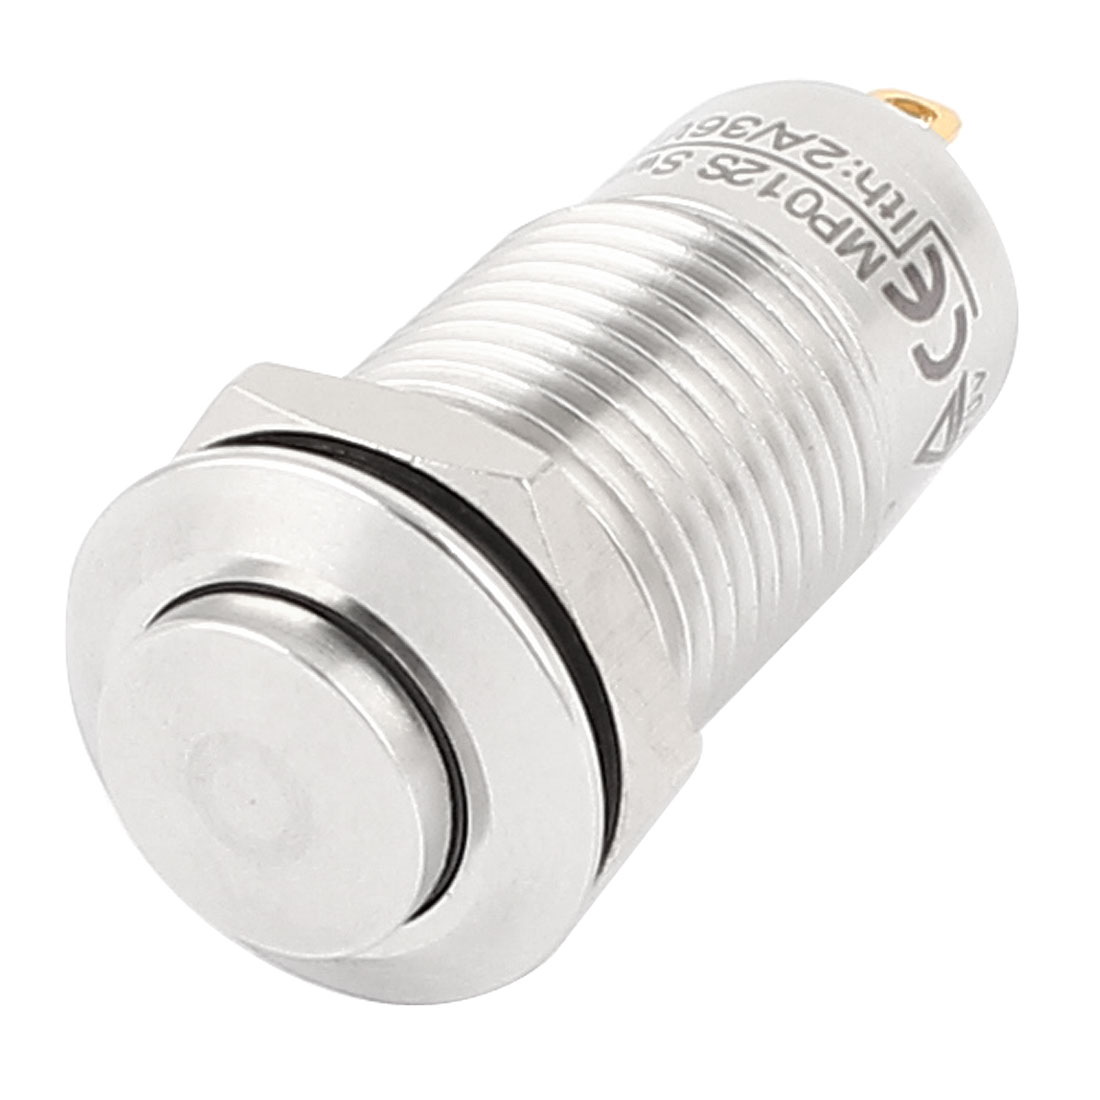 AC 36V 2A SPST 12mm Thread Momentary Metal Push Button Switch